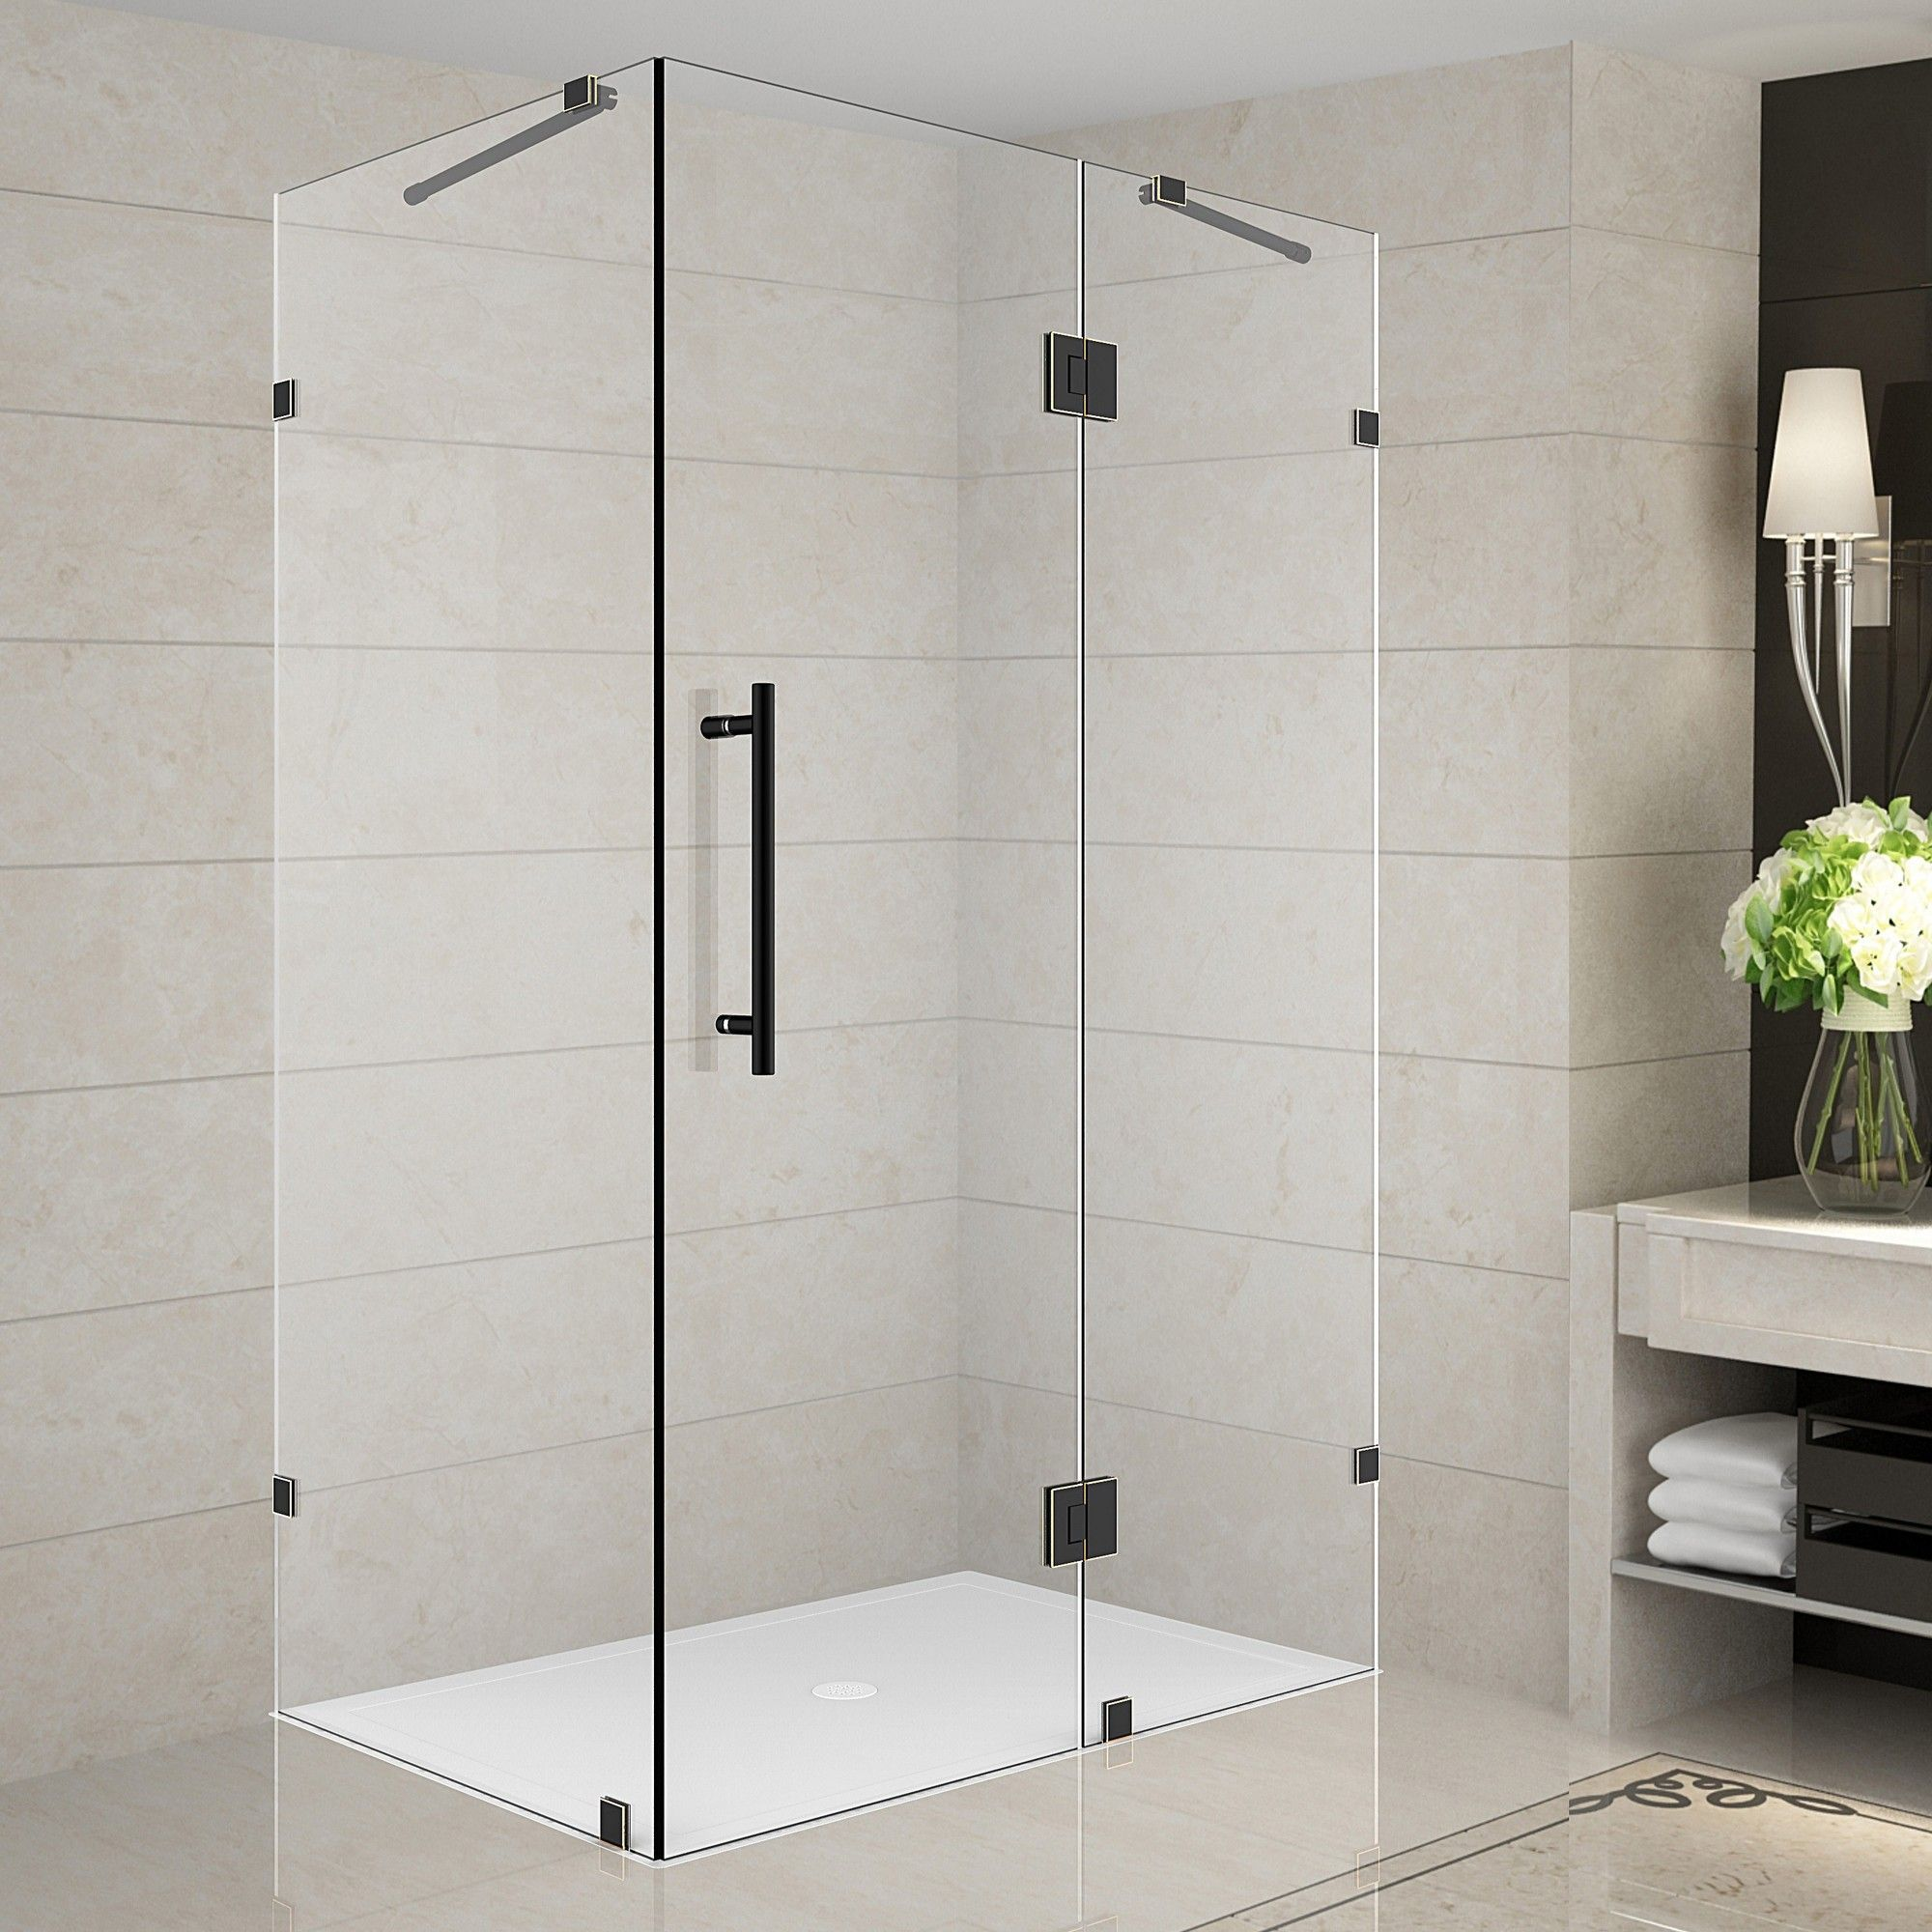 Avalux 33 X 72 Rectangle Hinged Shower Enclosure Frameless Shower Enclosures Shower Enclosure Frameless Shower Doors